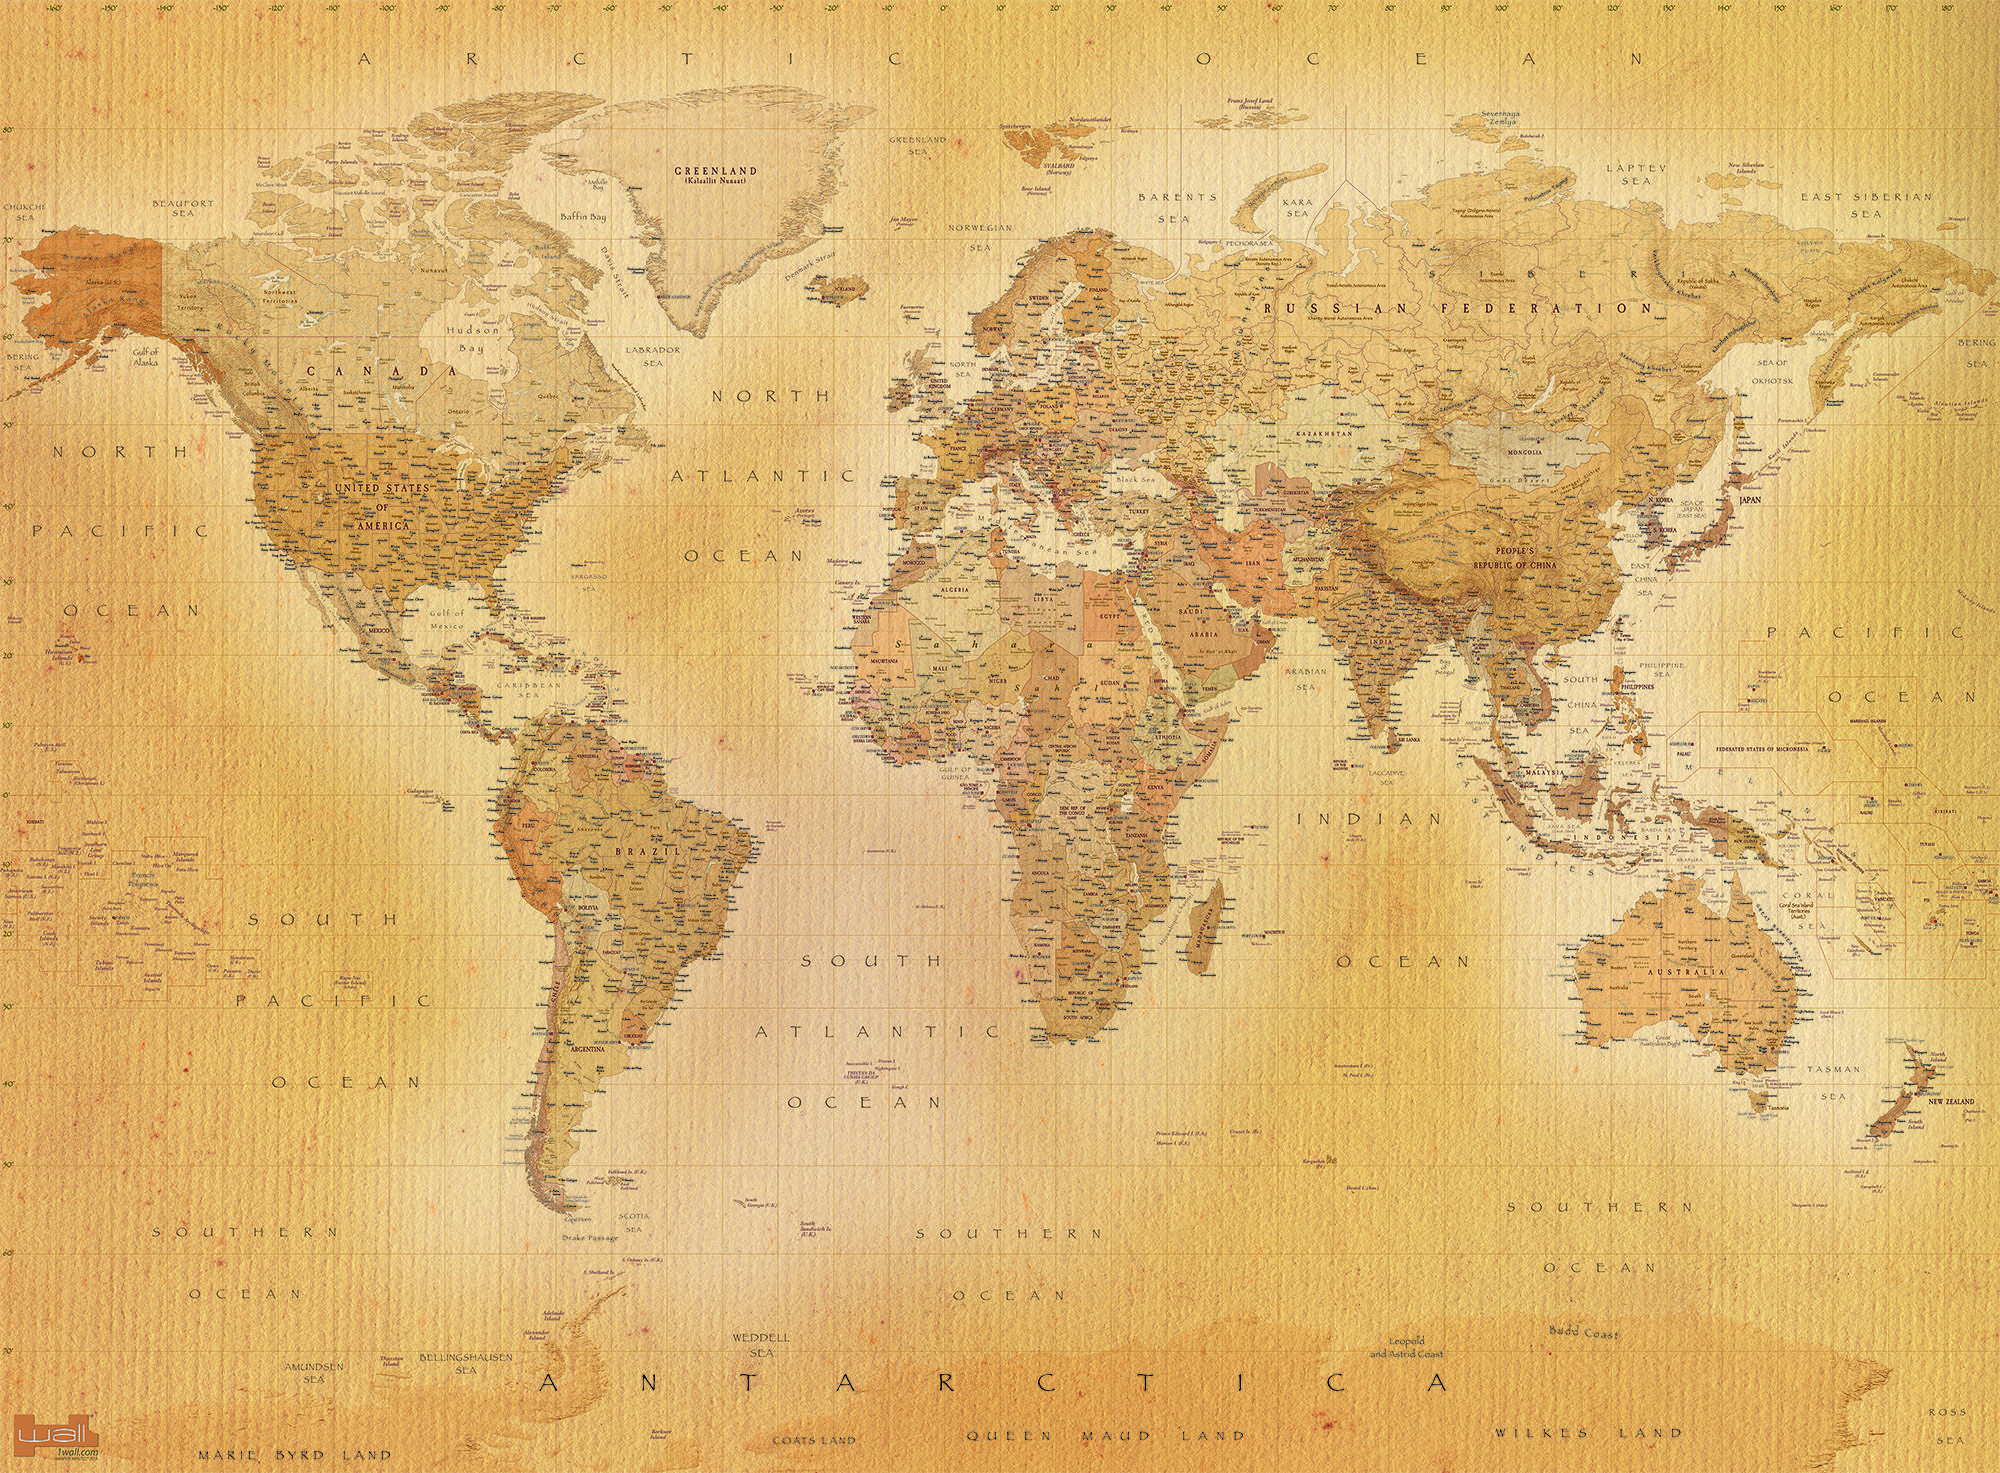 World Map Wallpaper Hd Wallpapers Backgrounds Images Art Photos Vintage World Map Poster World Map Wallpaper Antique World Map